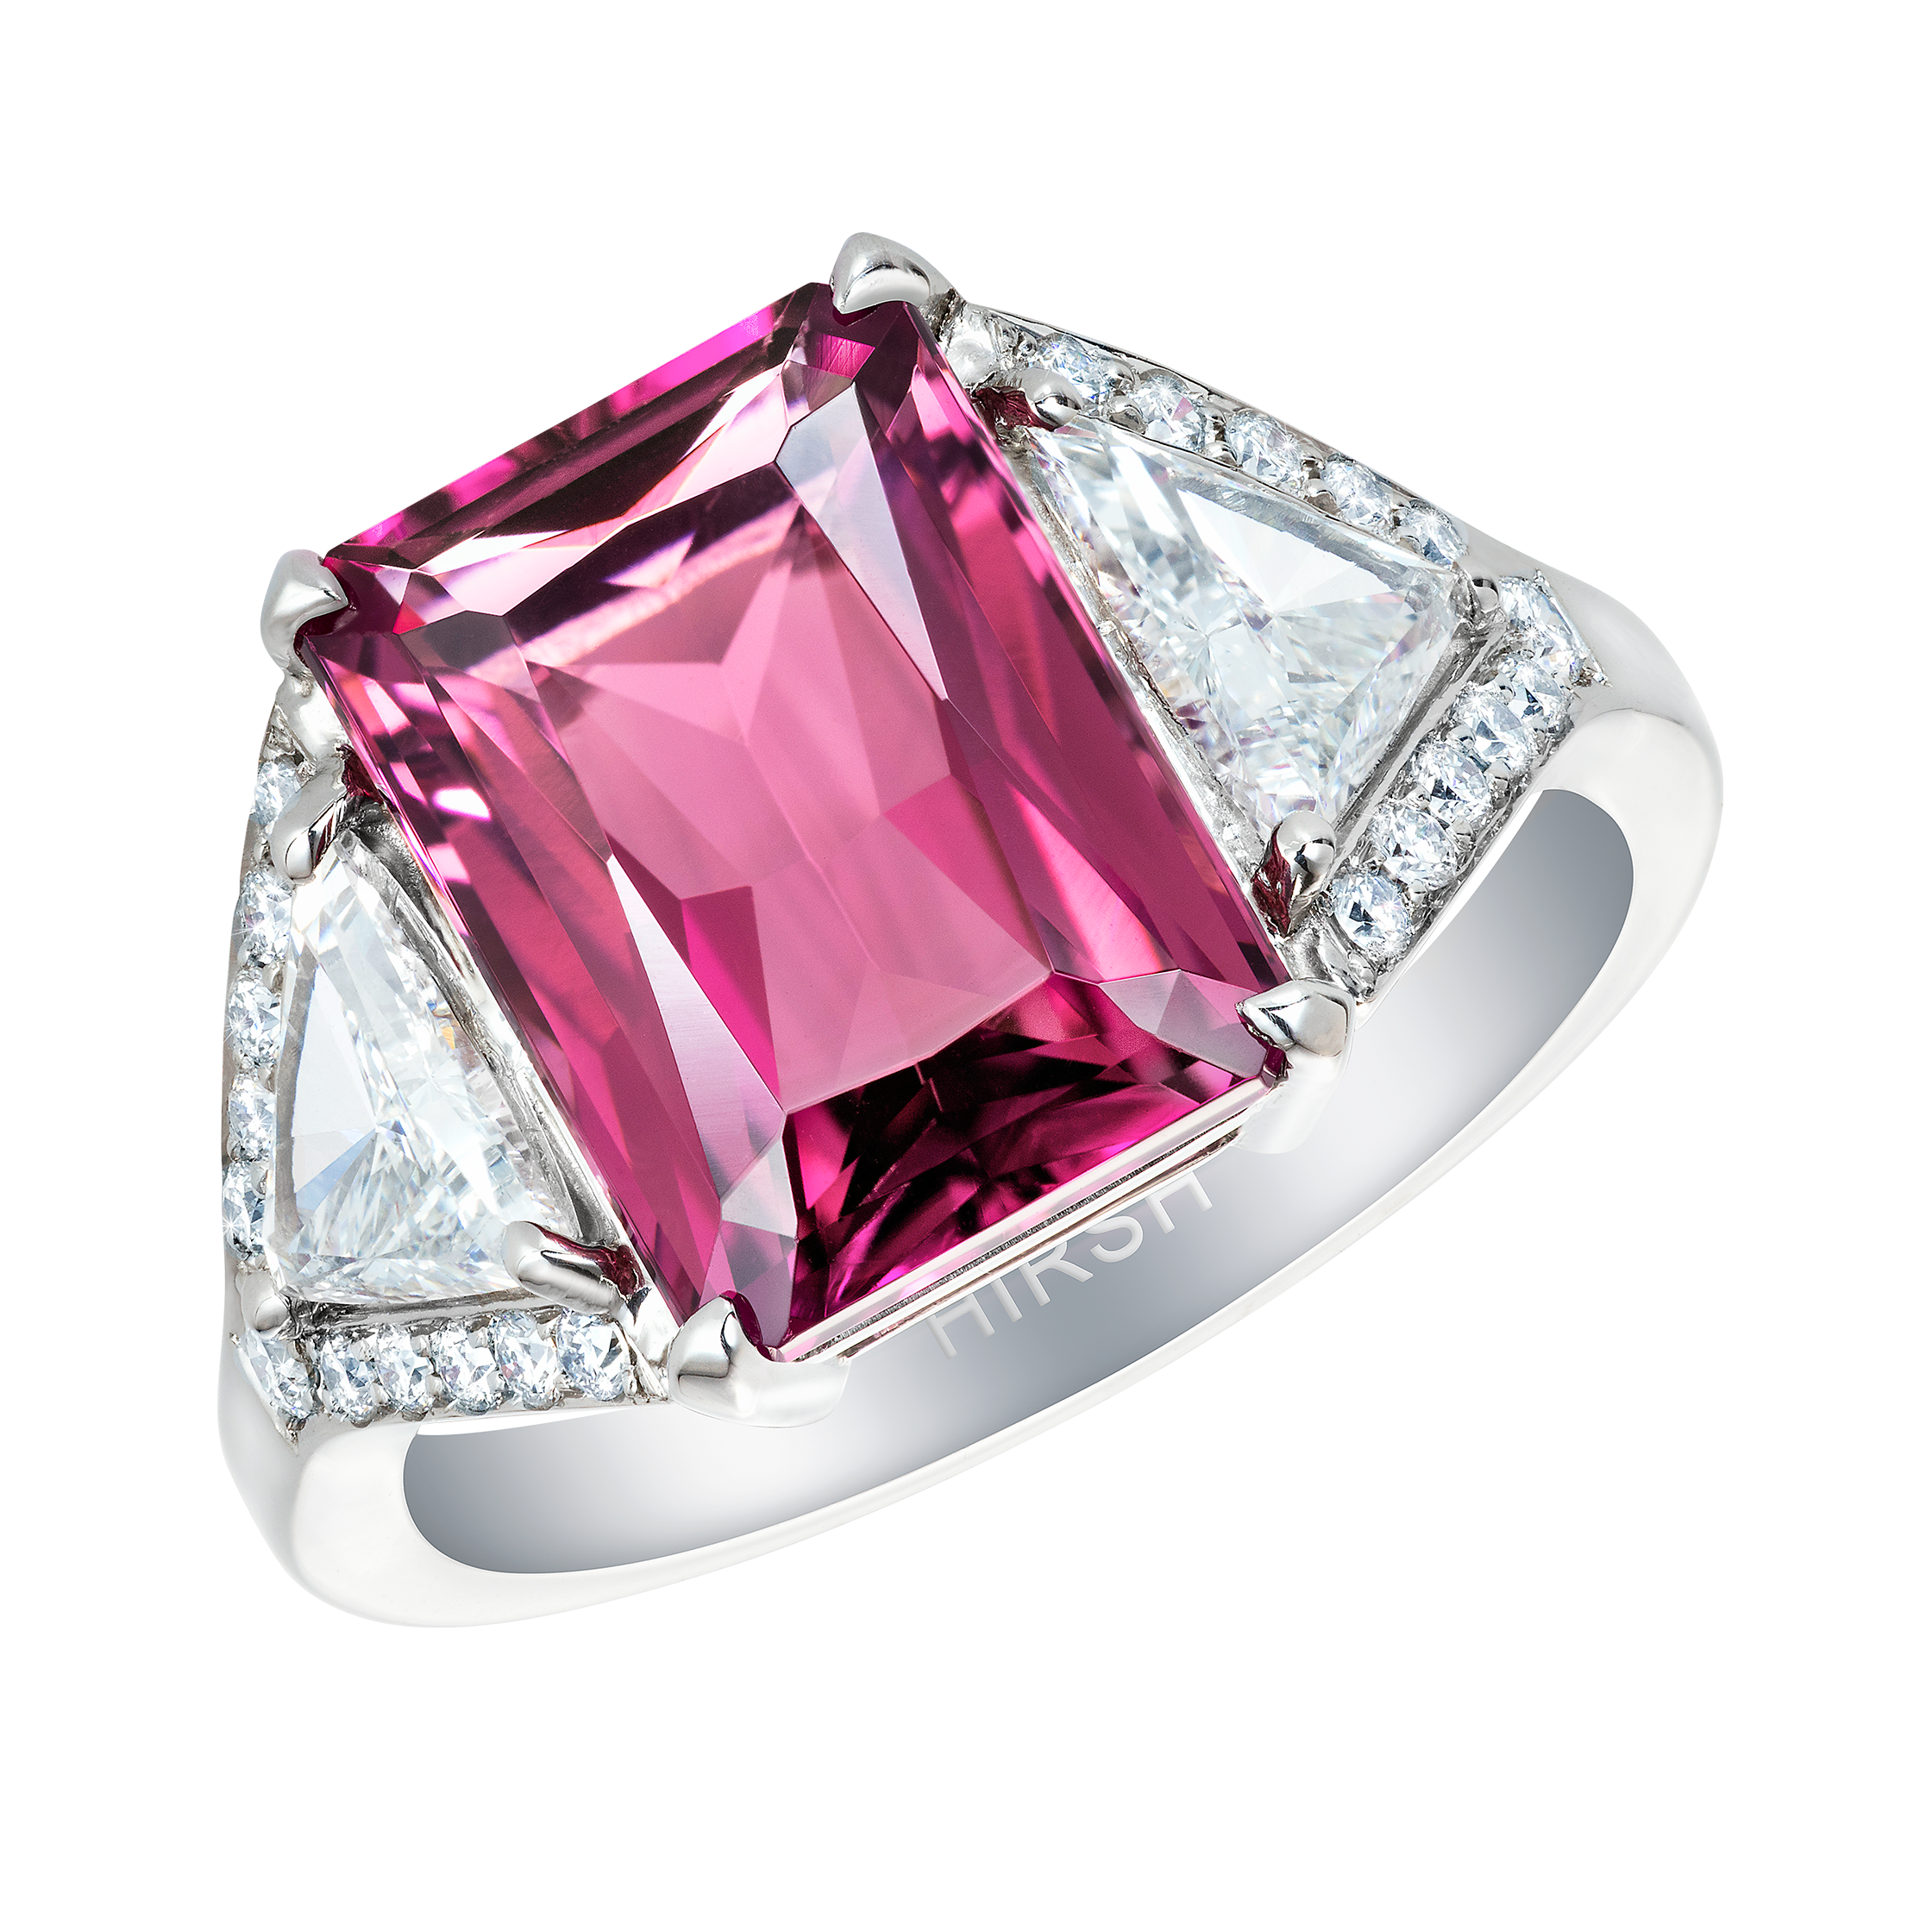 Radient Cut Pink Tourmaline and Diamond Majestic Ring